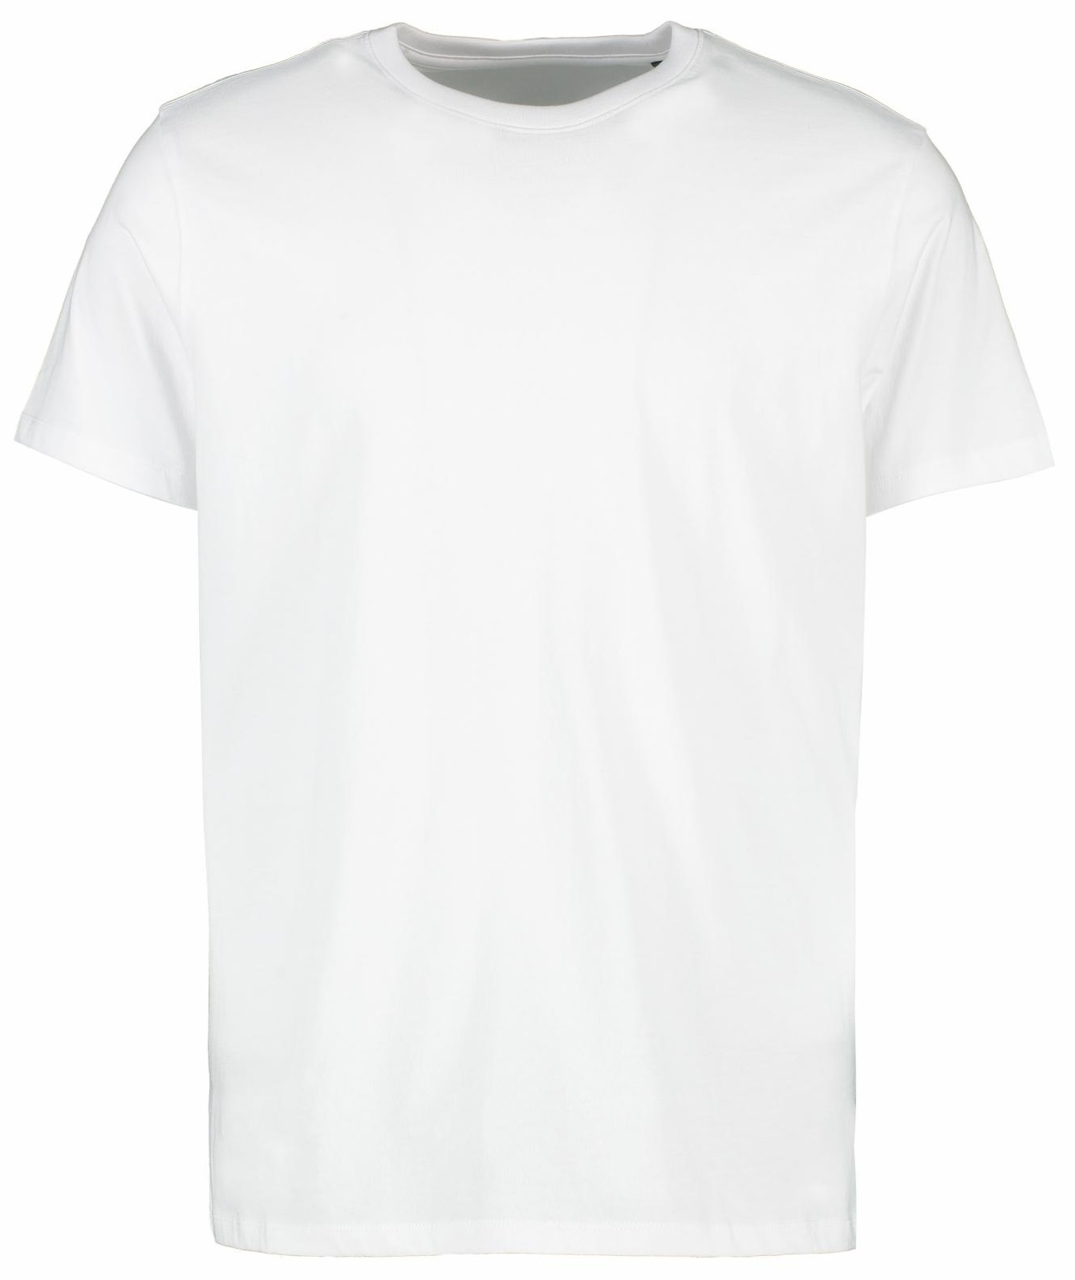 Picture of Organic O-neck T-Shirt 0552 / White